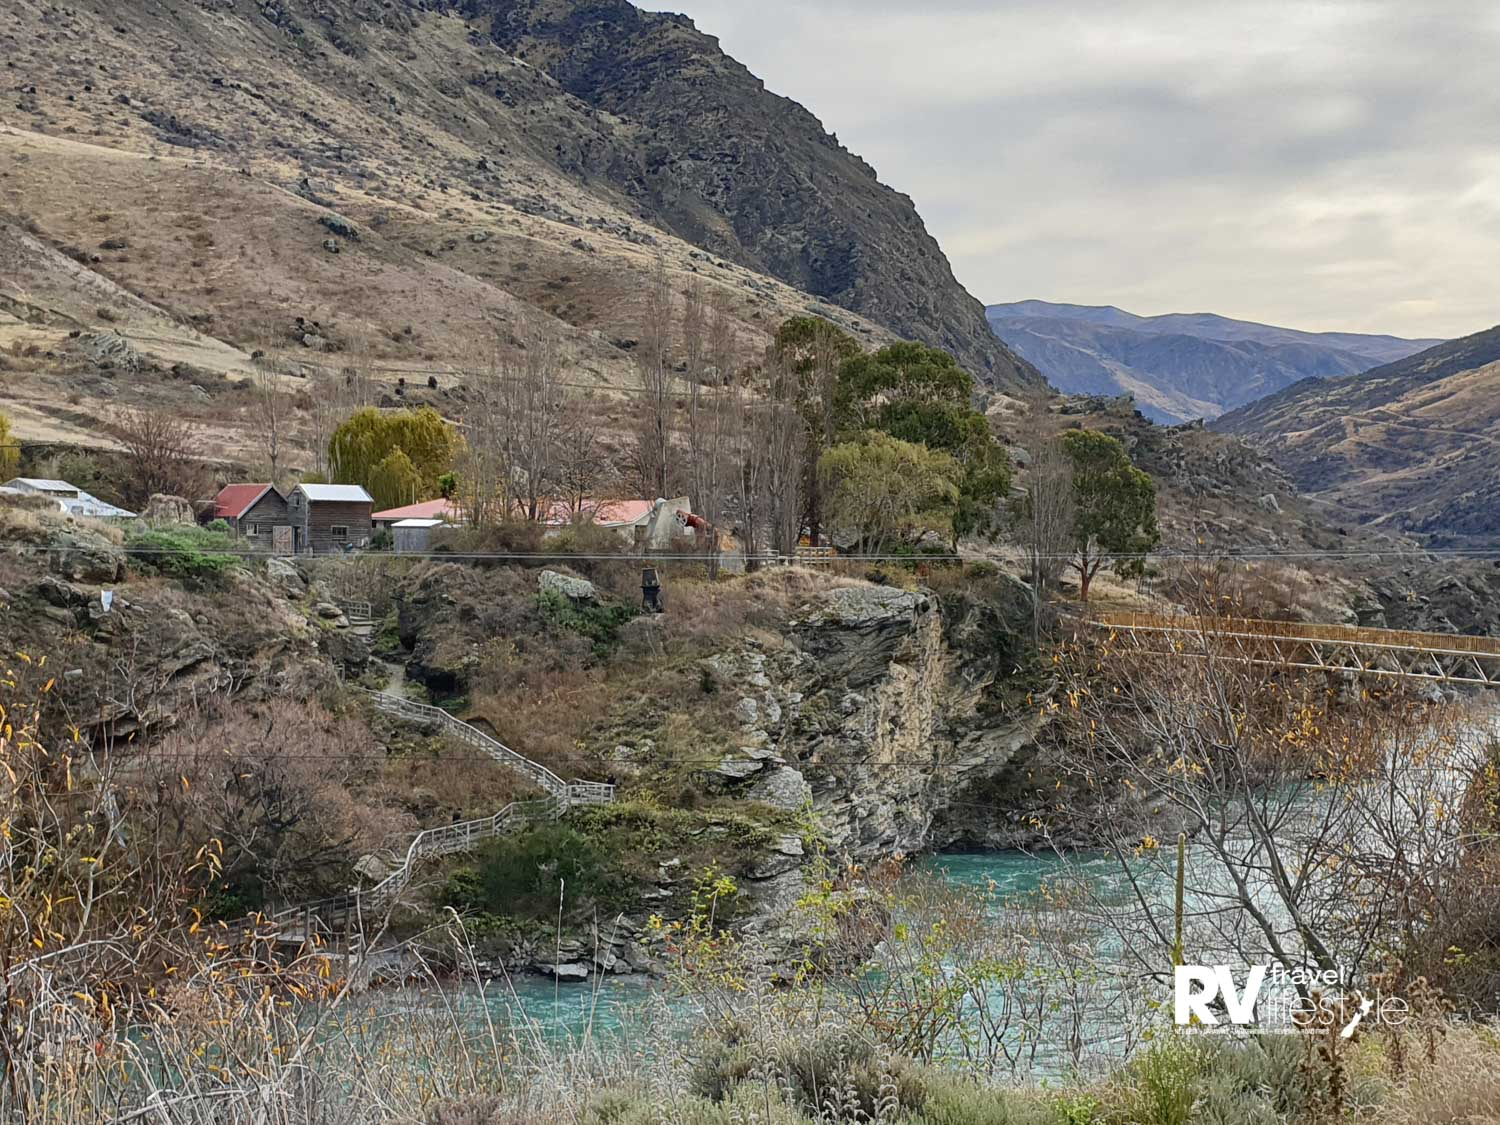 Goldfields, on the gorge drive along the Kawerau river heading back to Queenstown - this is a popular tourist destination, history, gold panning, walks to explore old miners huts and good food I hear. Jetboats come and go from here as well